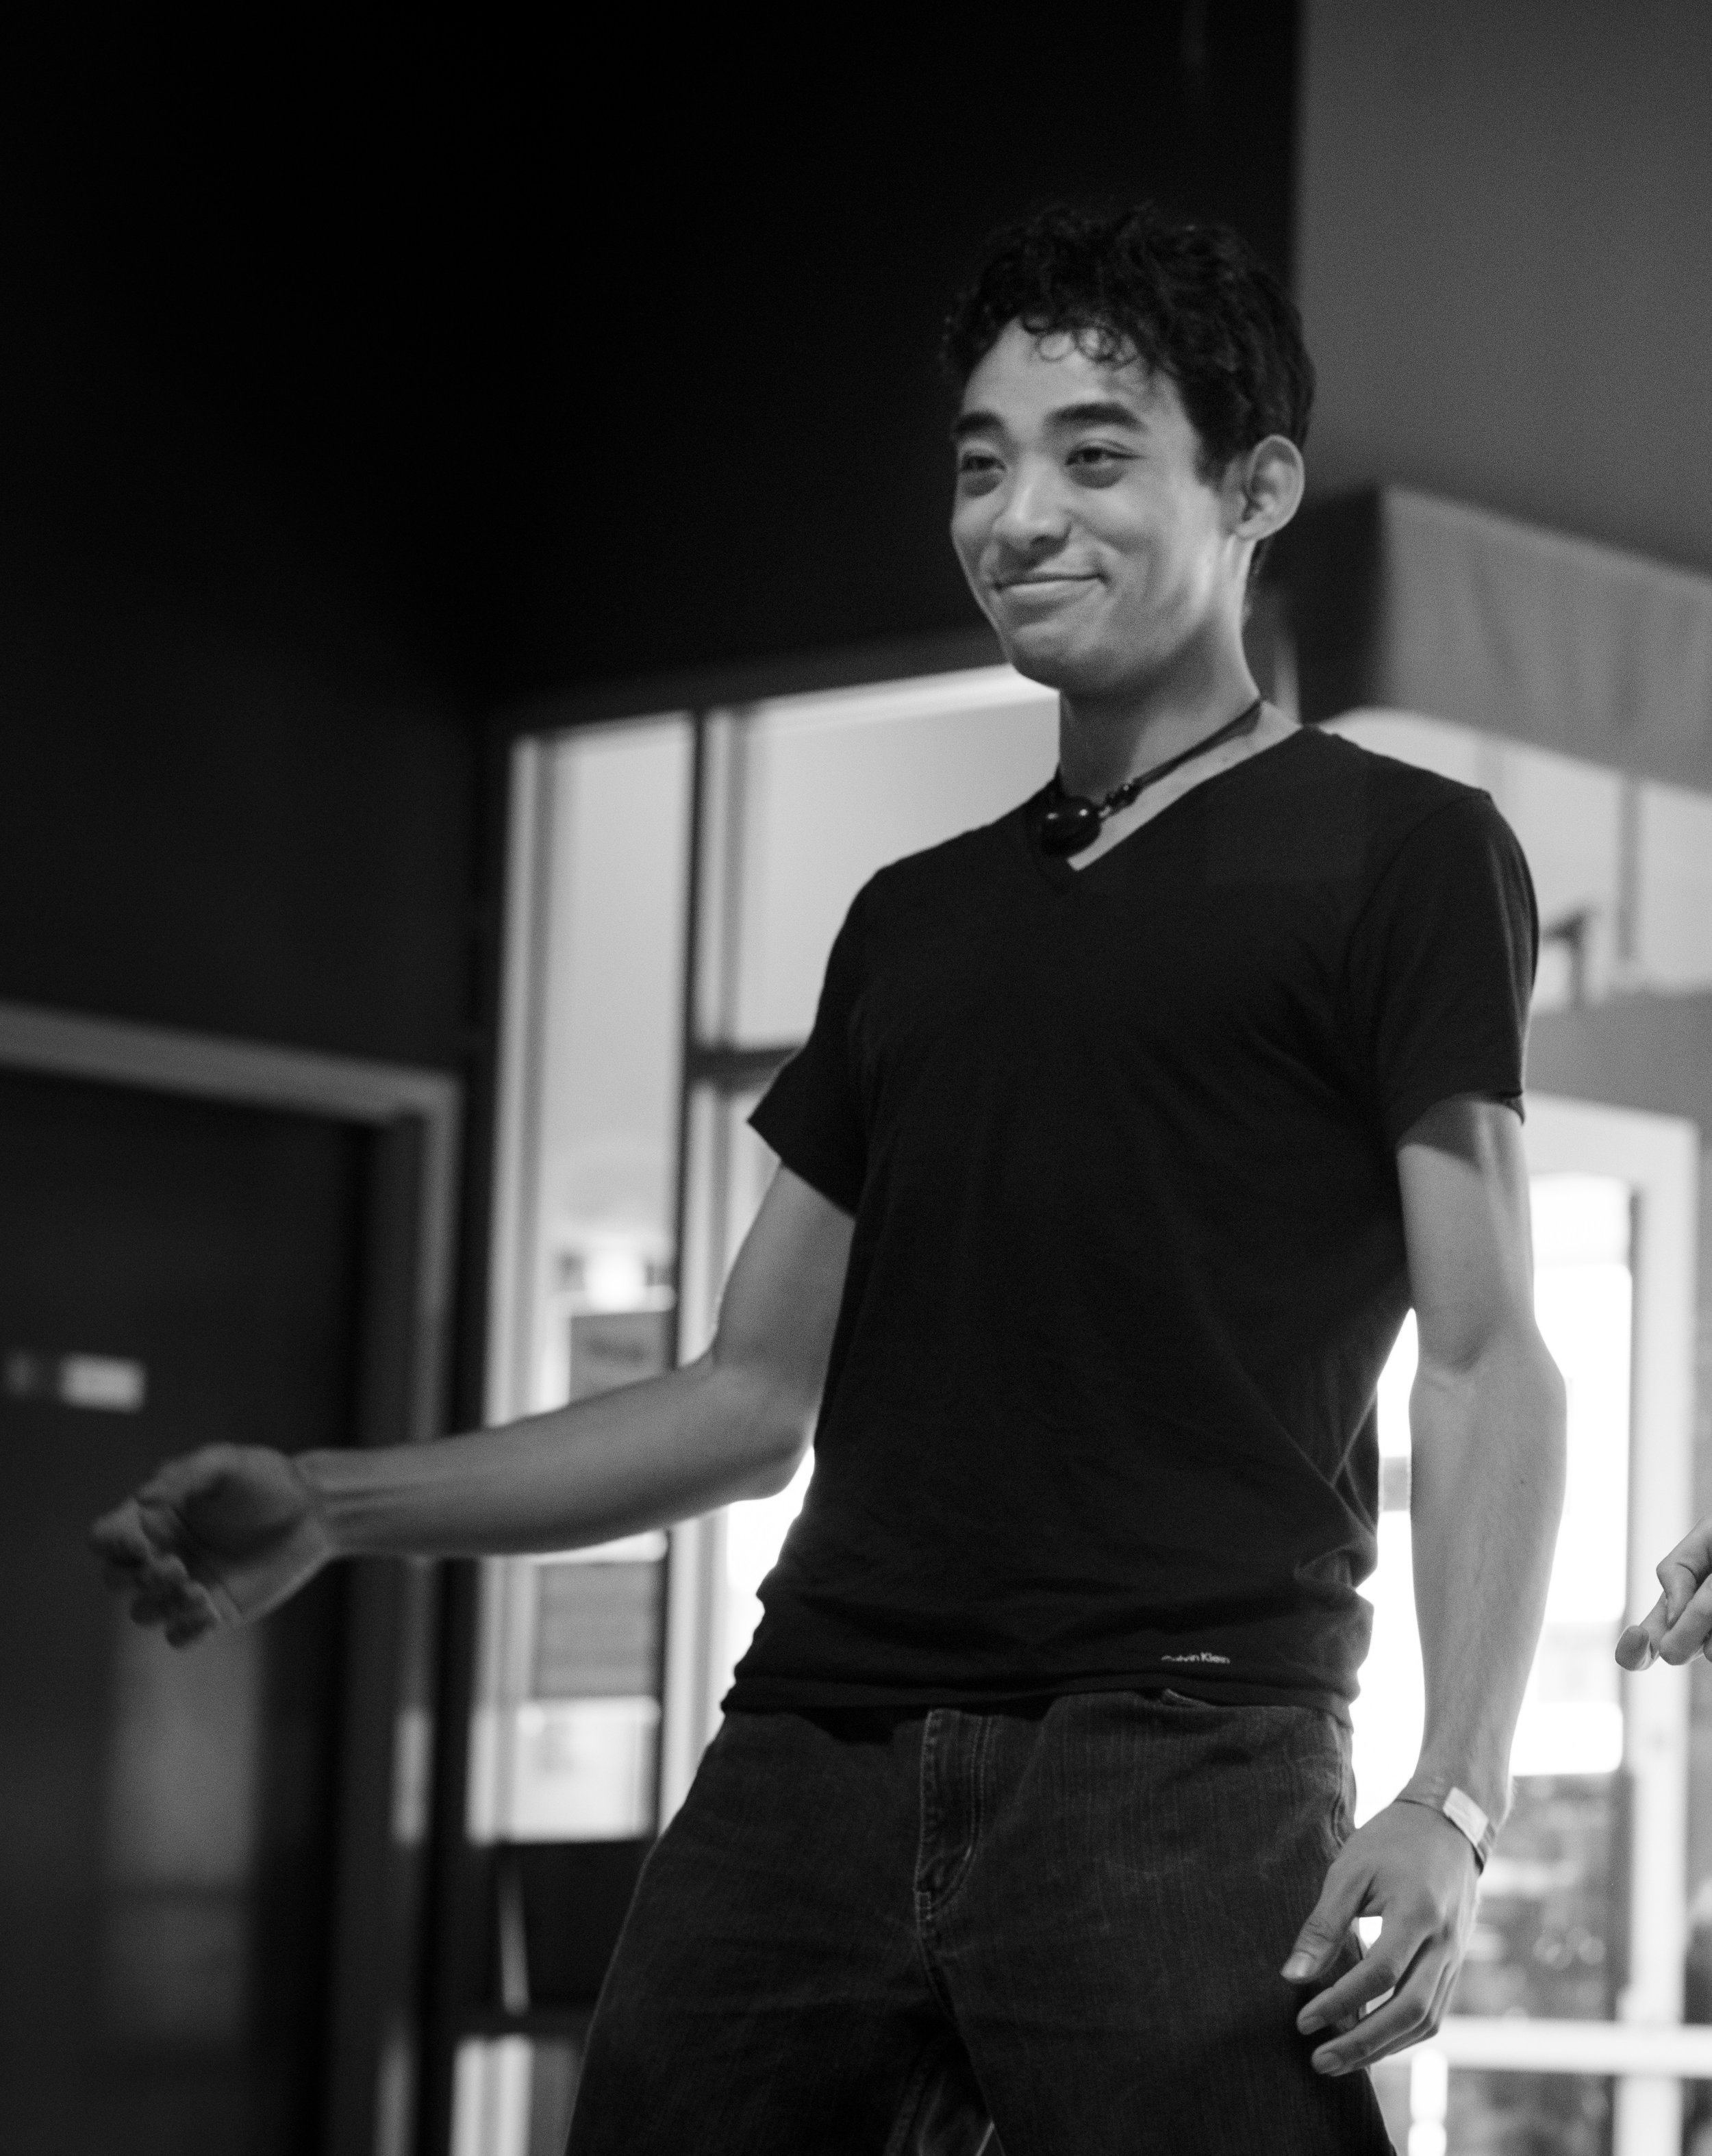 Upon stumbling upon fusion dance, Matthew immediately fell in love with the improvisational freedom available within it. His goal as a DJ is to bring emotionally evocative music to dancers and empower them to have whimsical, funky, and awe-inspiring dance conversations.